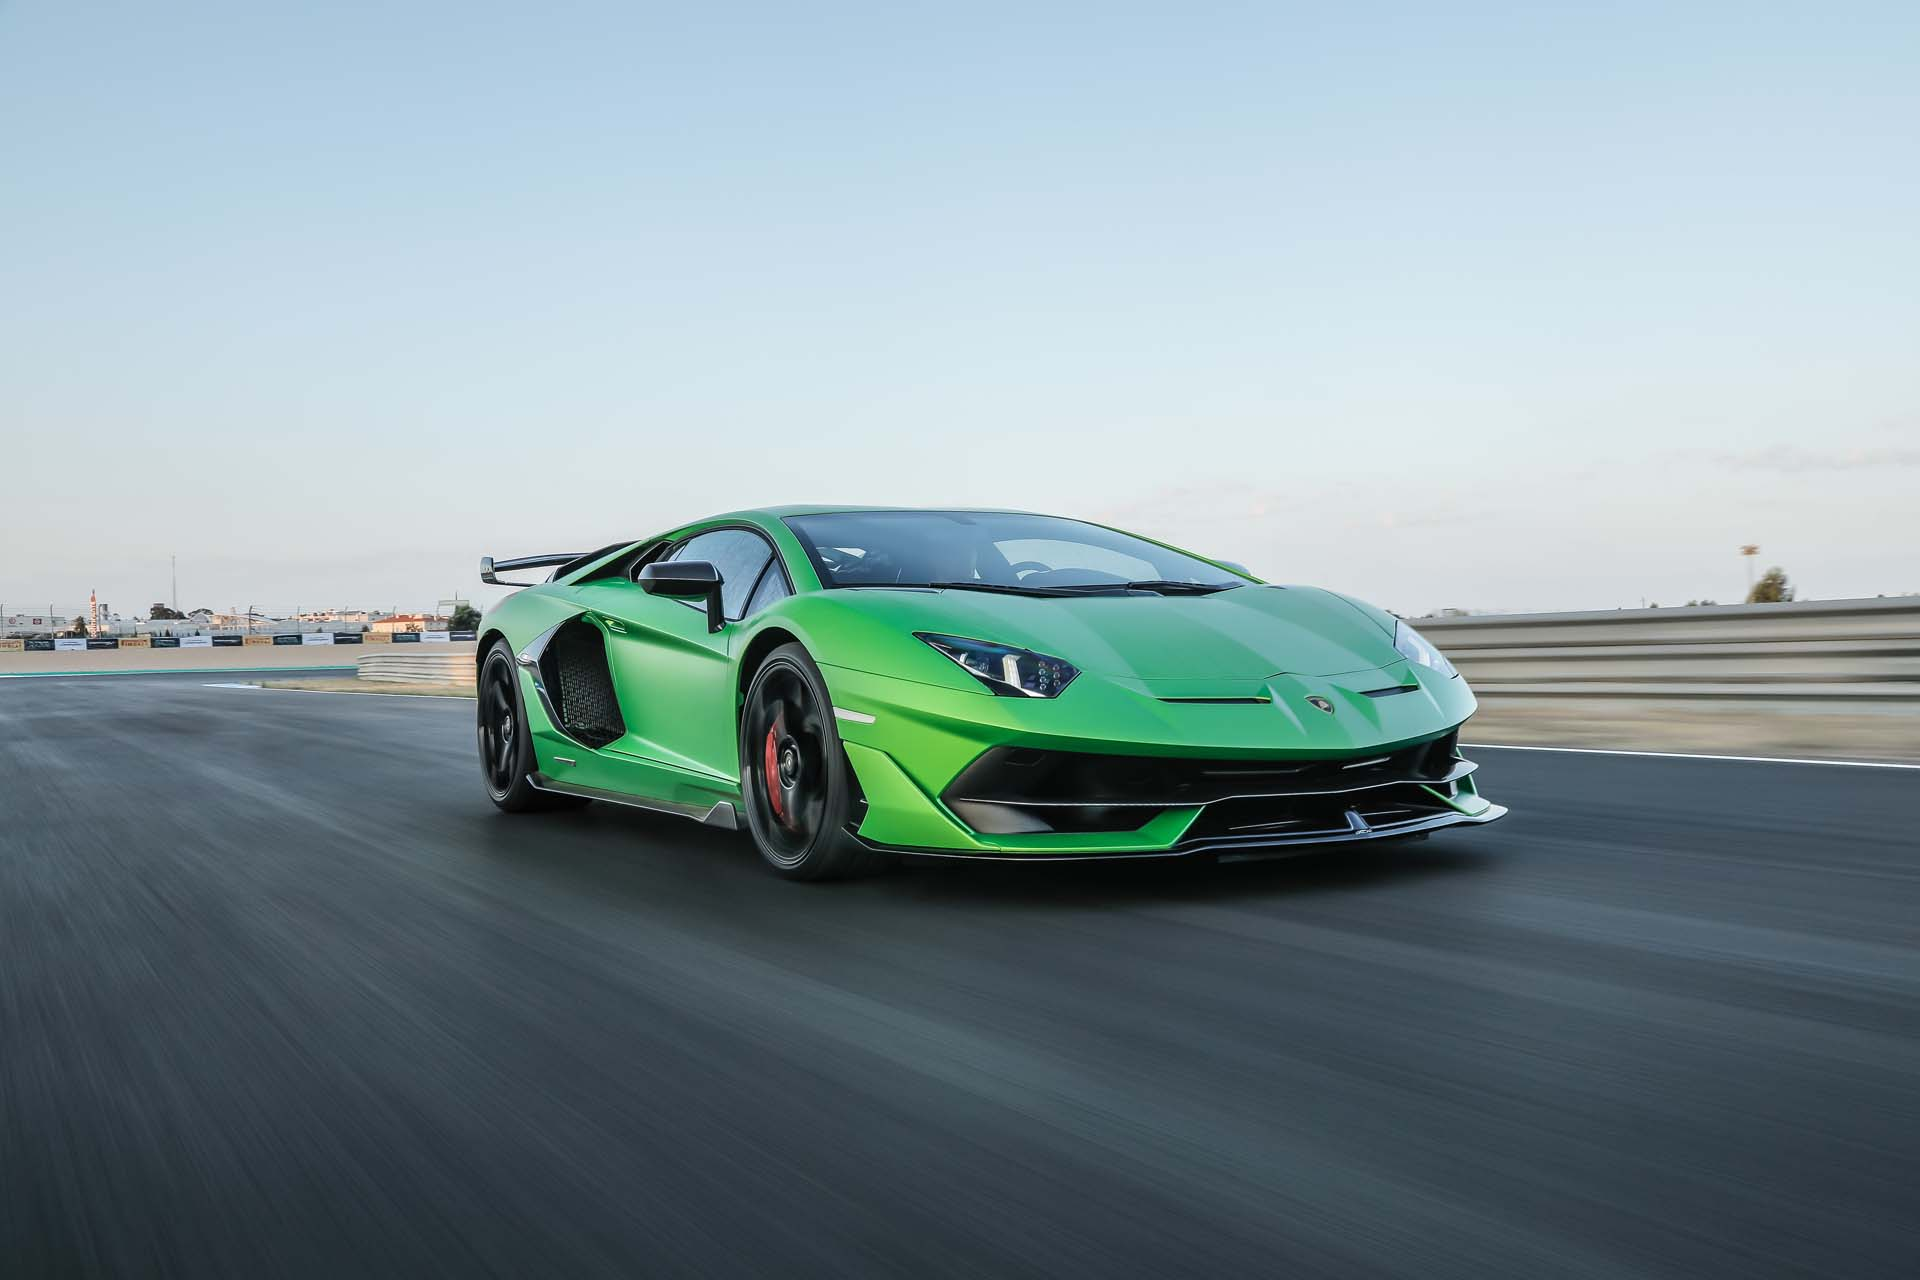 2019 Lamborghini Aventador SVJ Front Three-Quarter Wallpapers (1)